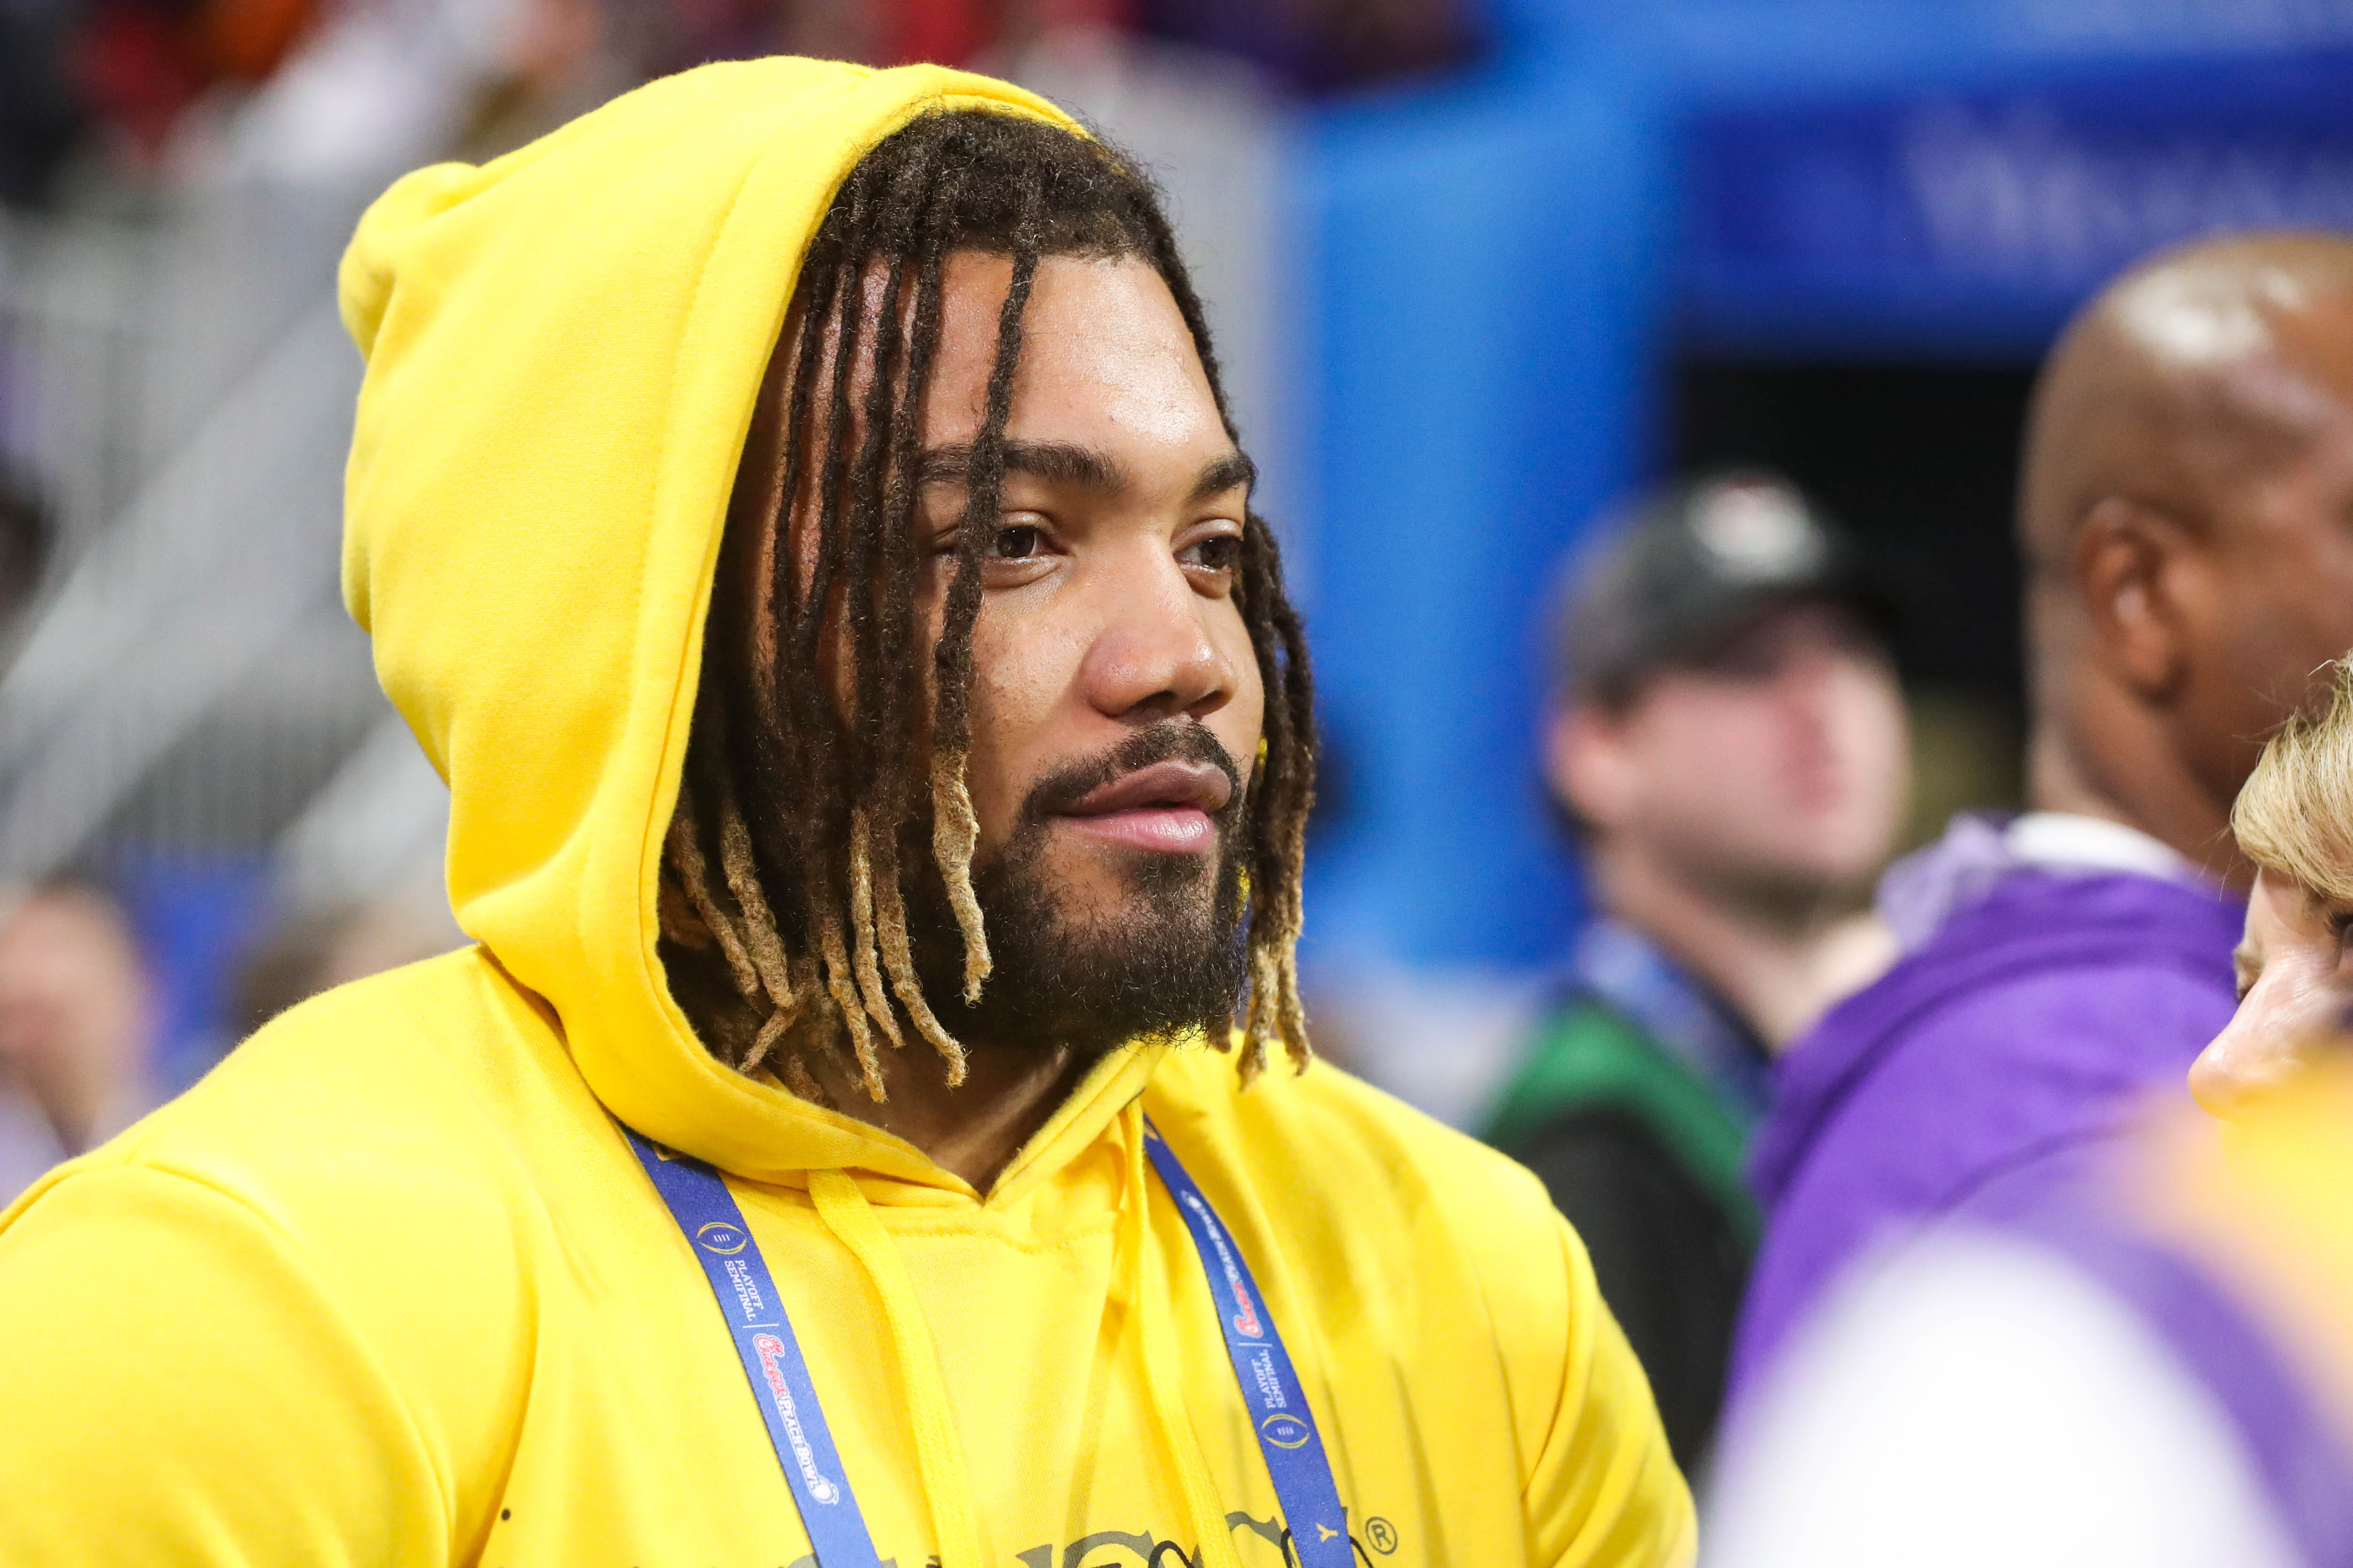 Court documents: Former Washington RB Derrius Guice strangled girlfriend until she was unconscious